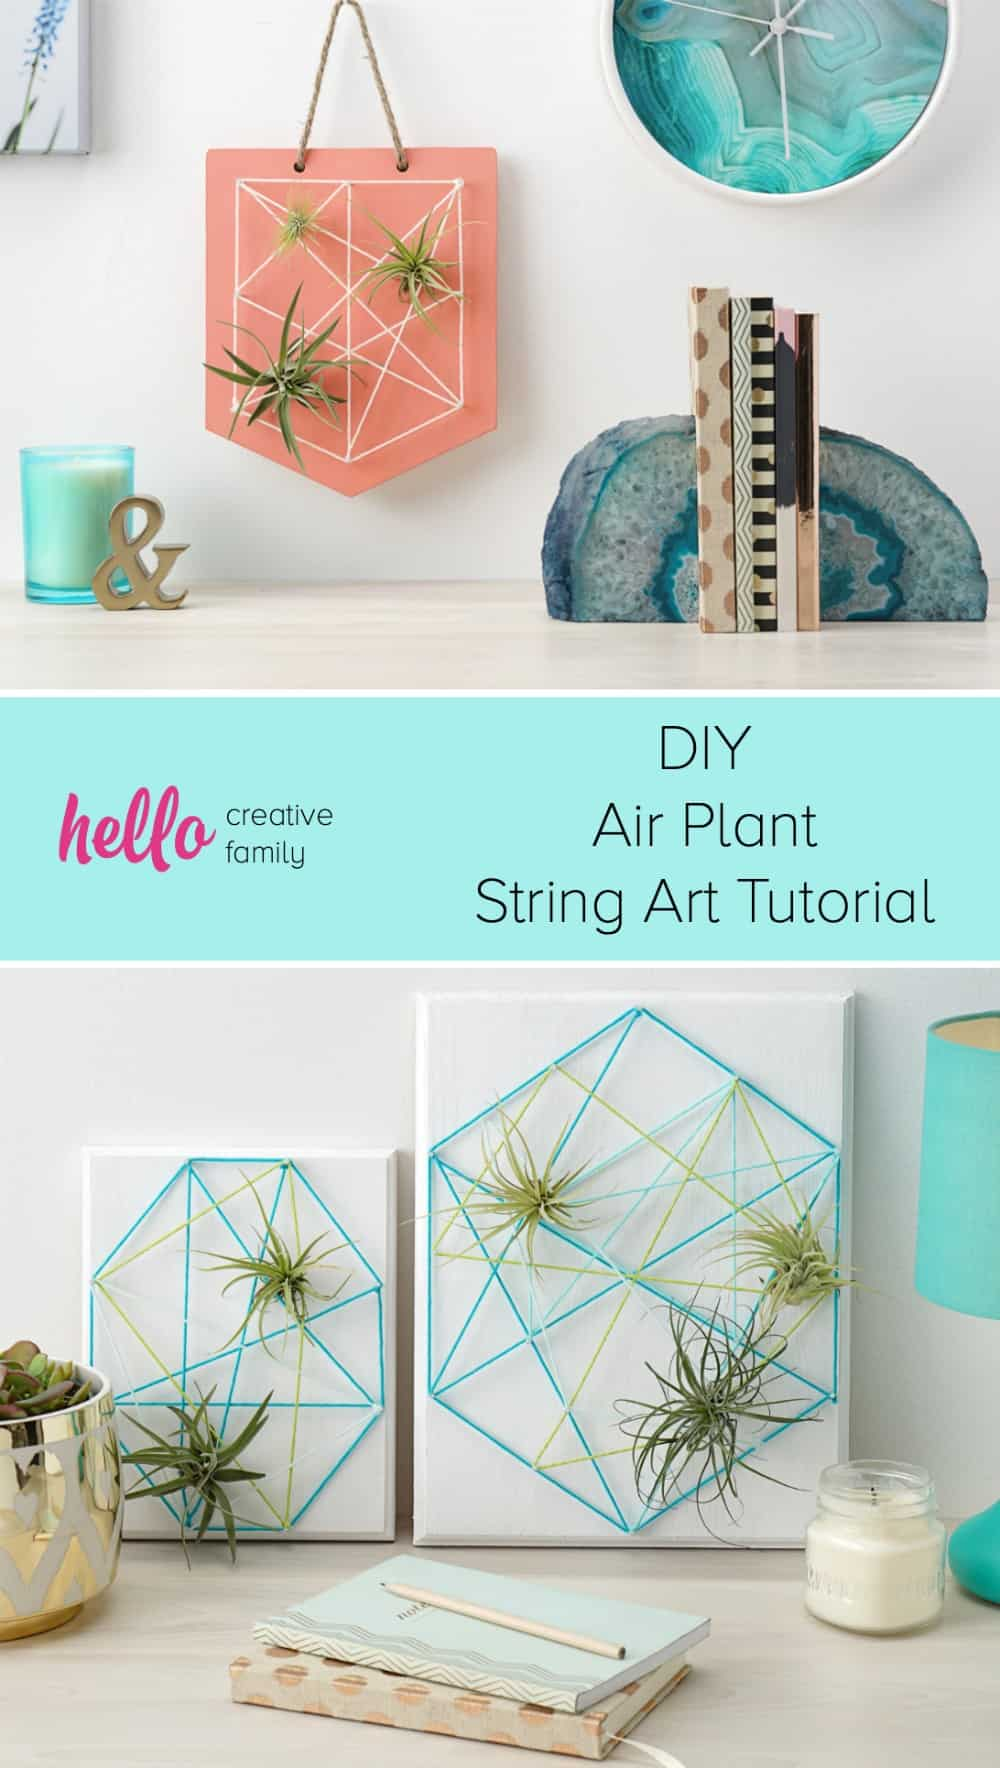 Diy air plant string art